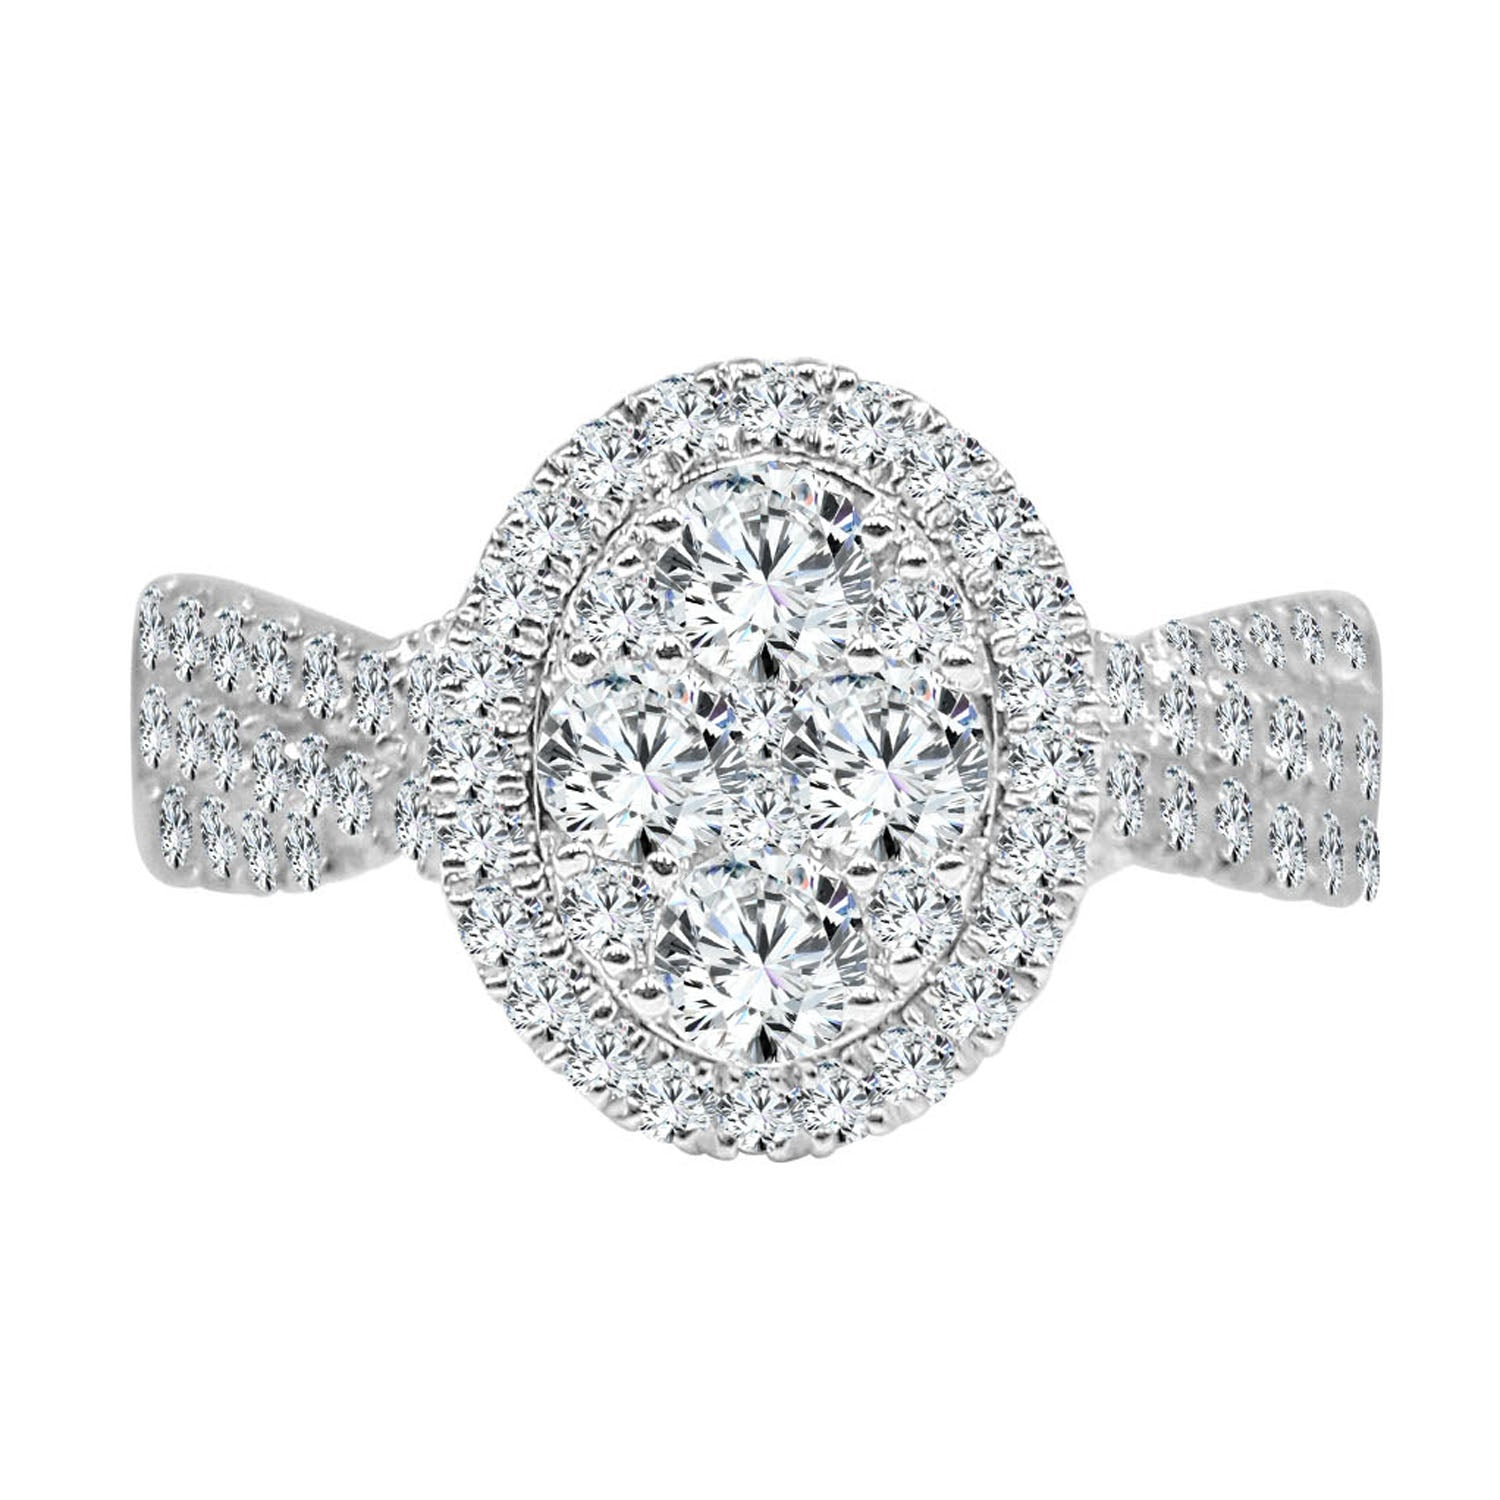 Oval Diamond Cluster Ring With Halo And Curved Band